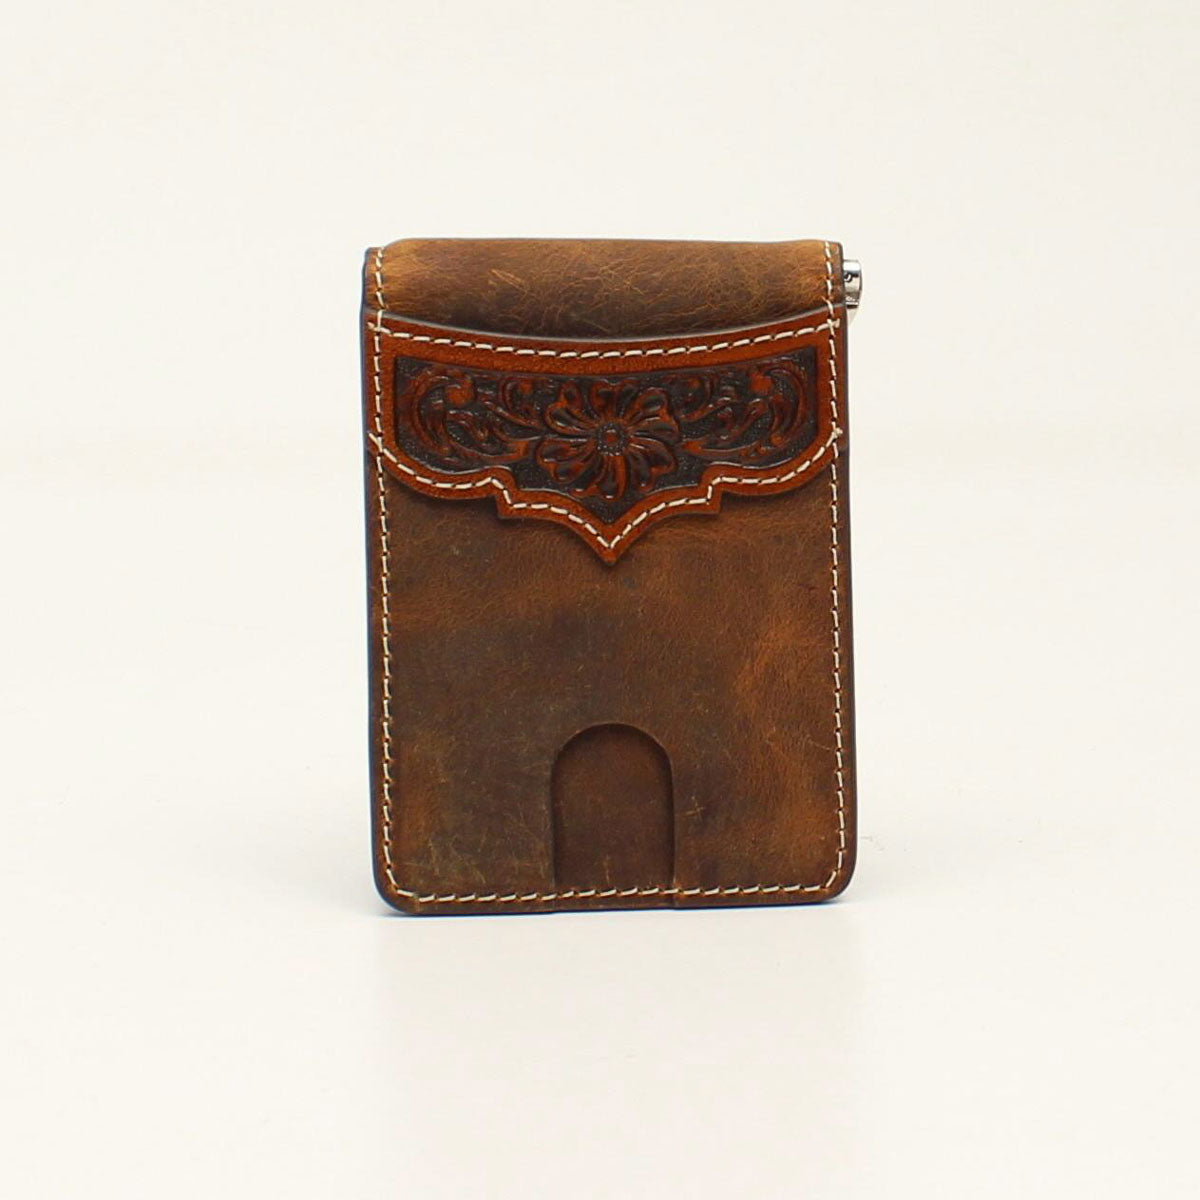 Ariat Bifold Money Clip Floral Embossed Overlay Tan Wallet